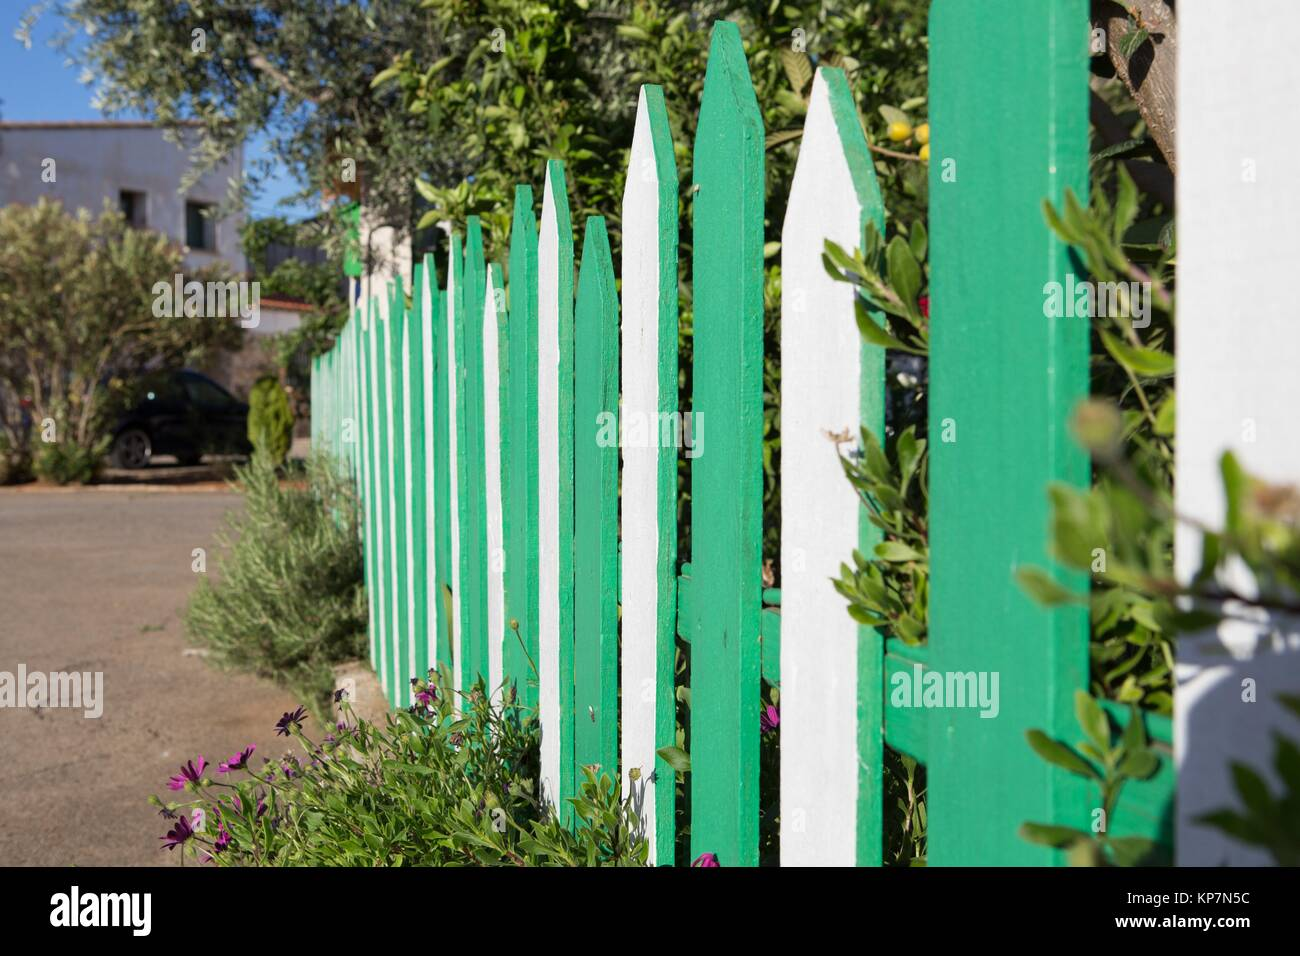 green and white fenced in a garden - Stock Image